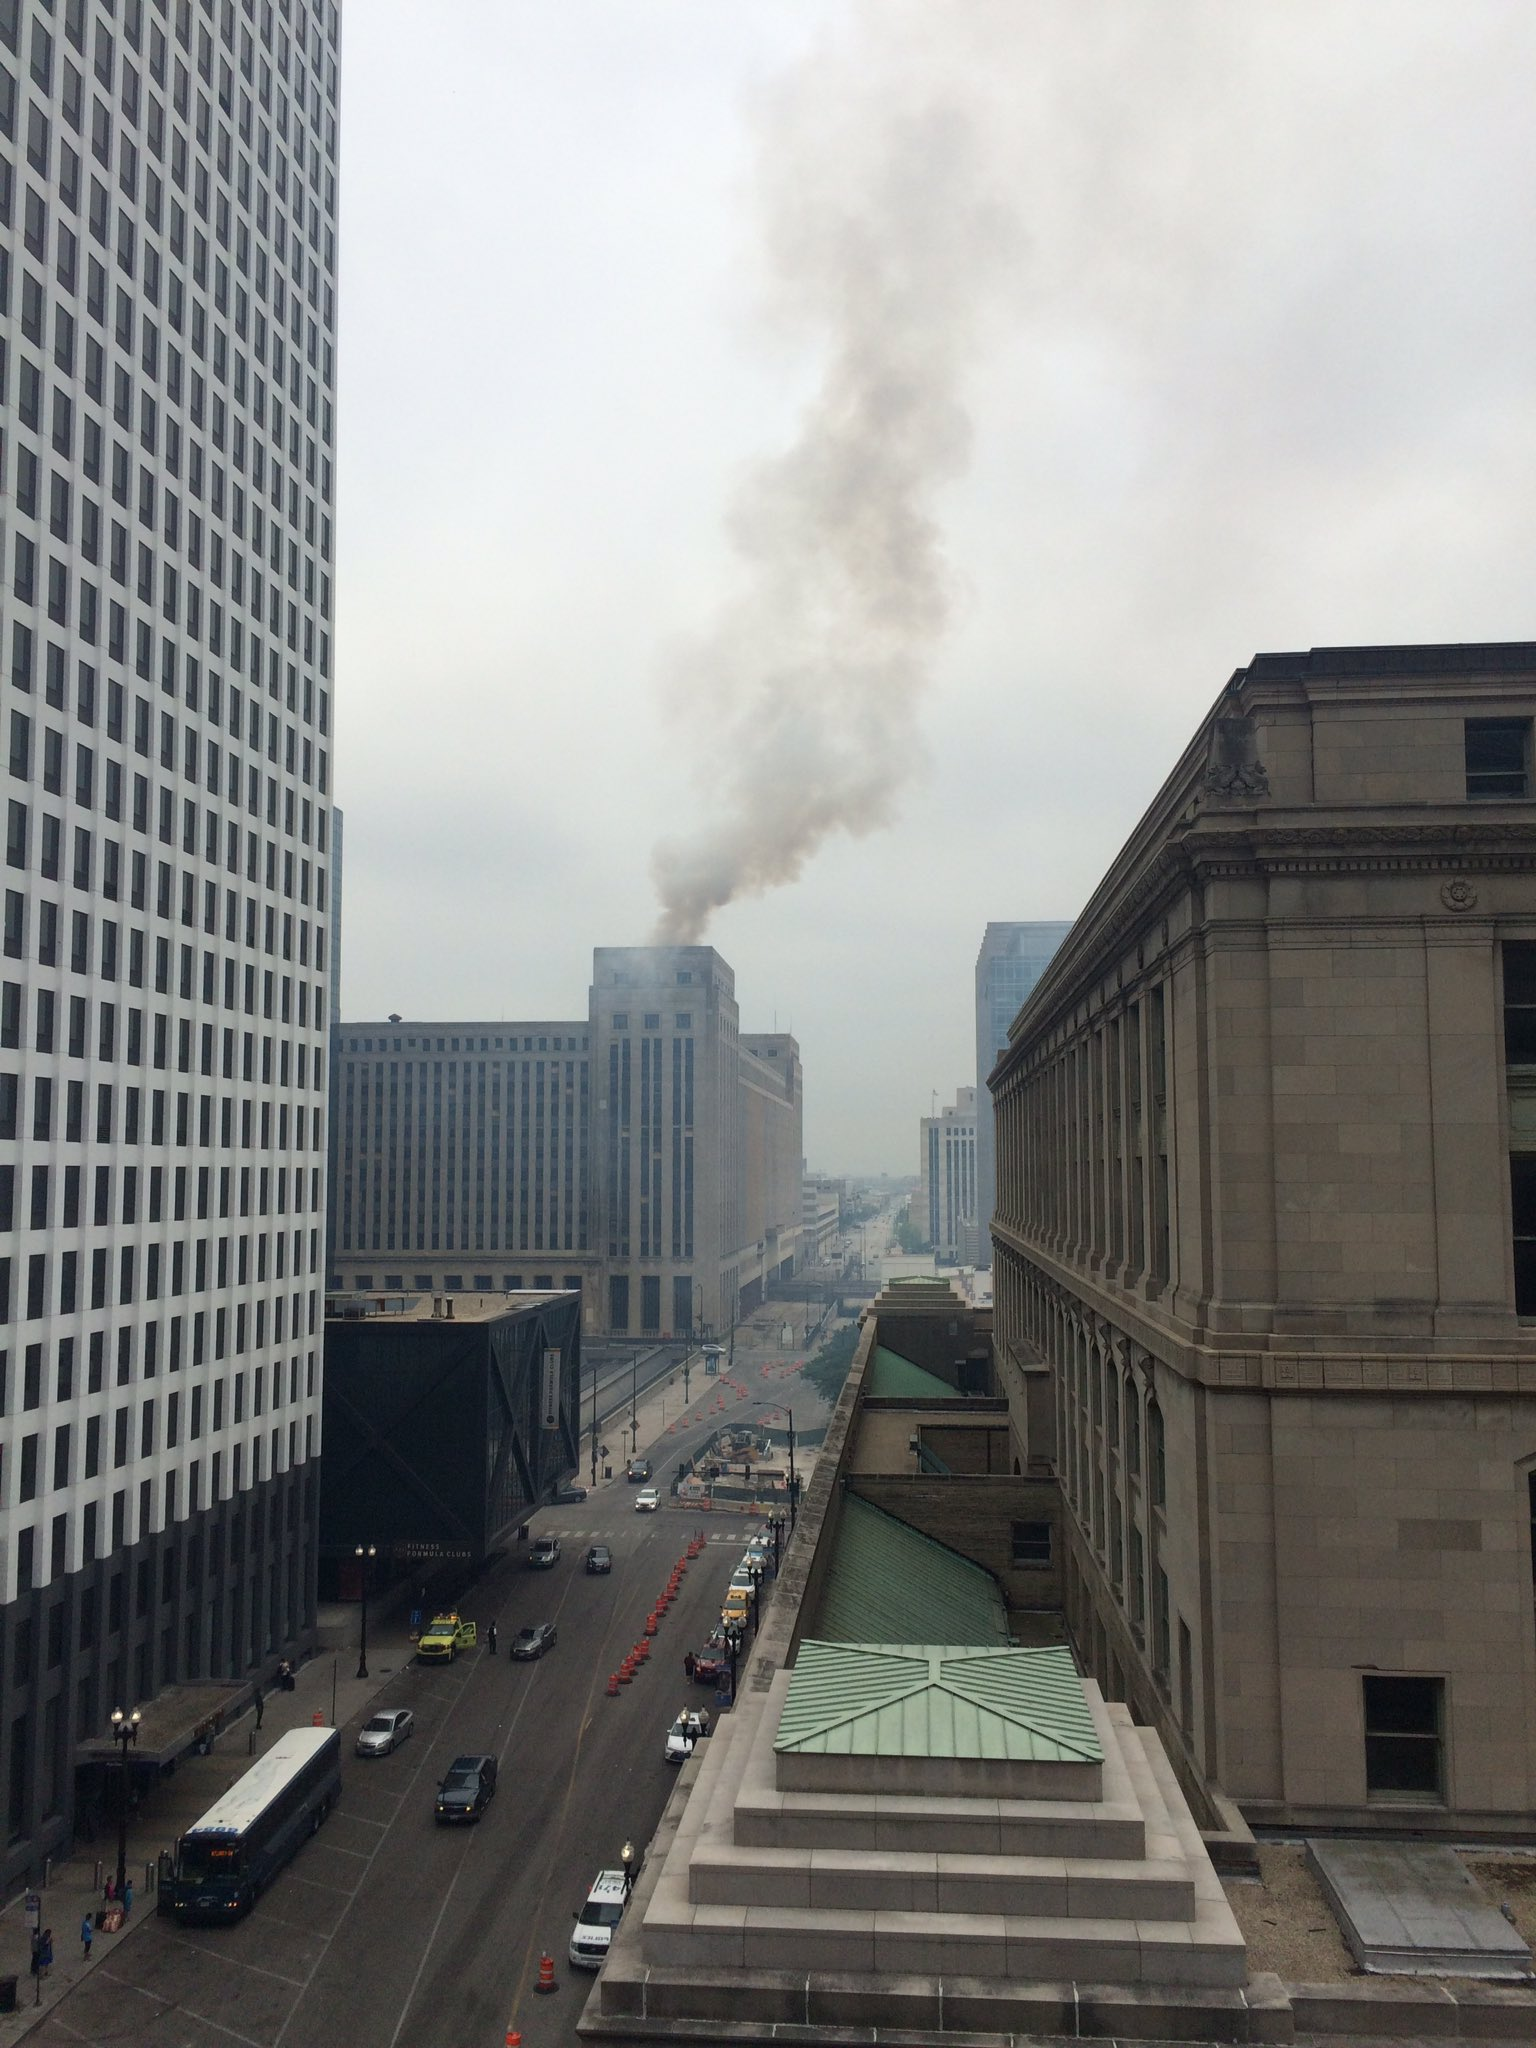 Fire at the Old Post Office (by Jeff Carlson/@car_jaq — https://twitter.com/car_jaq/status/749977511853907968)